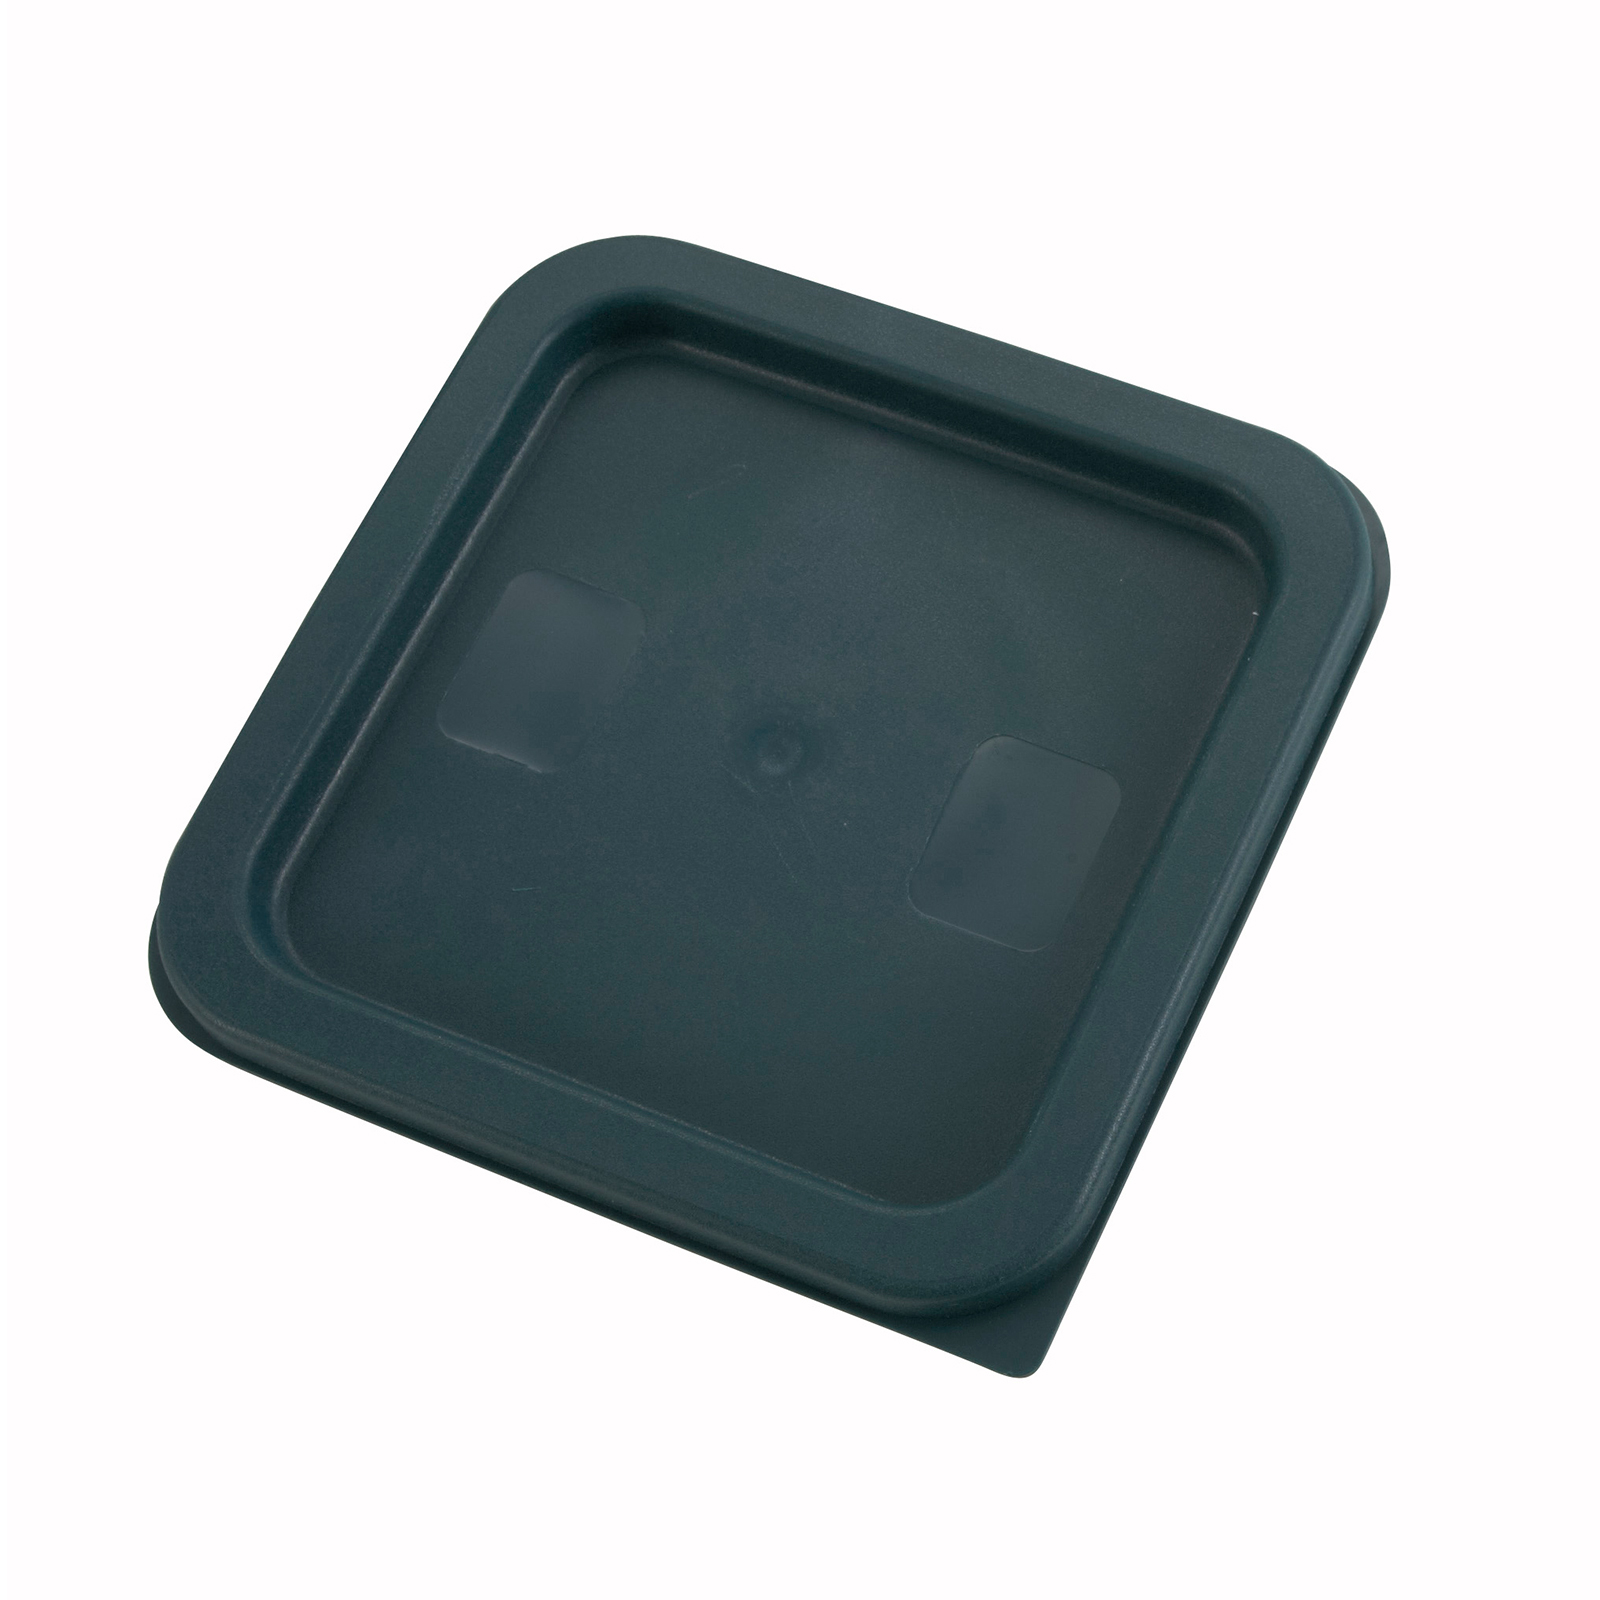 Winco PECC-24 food storage container cover